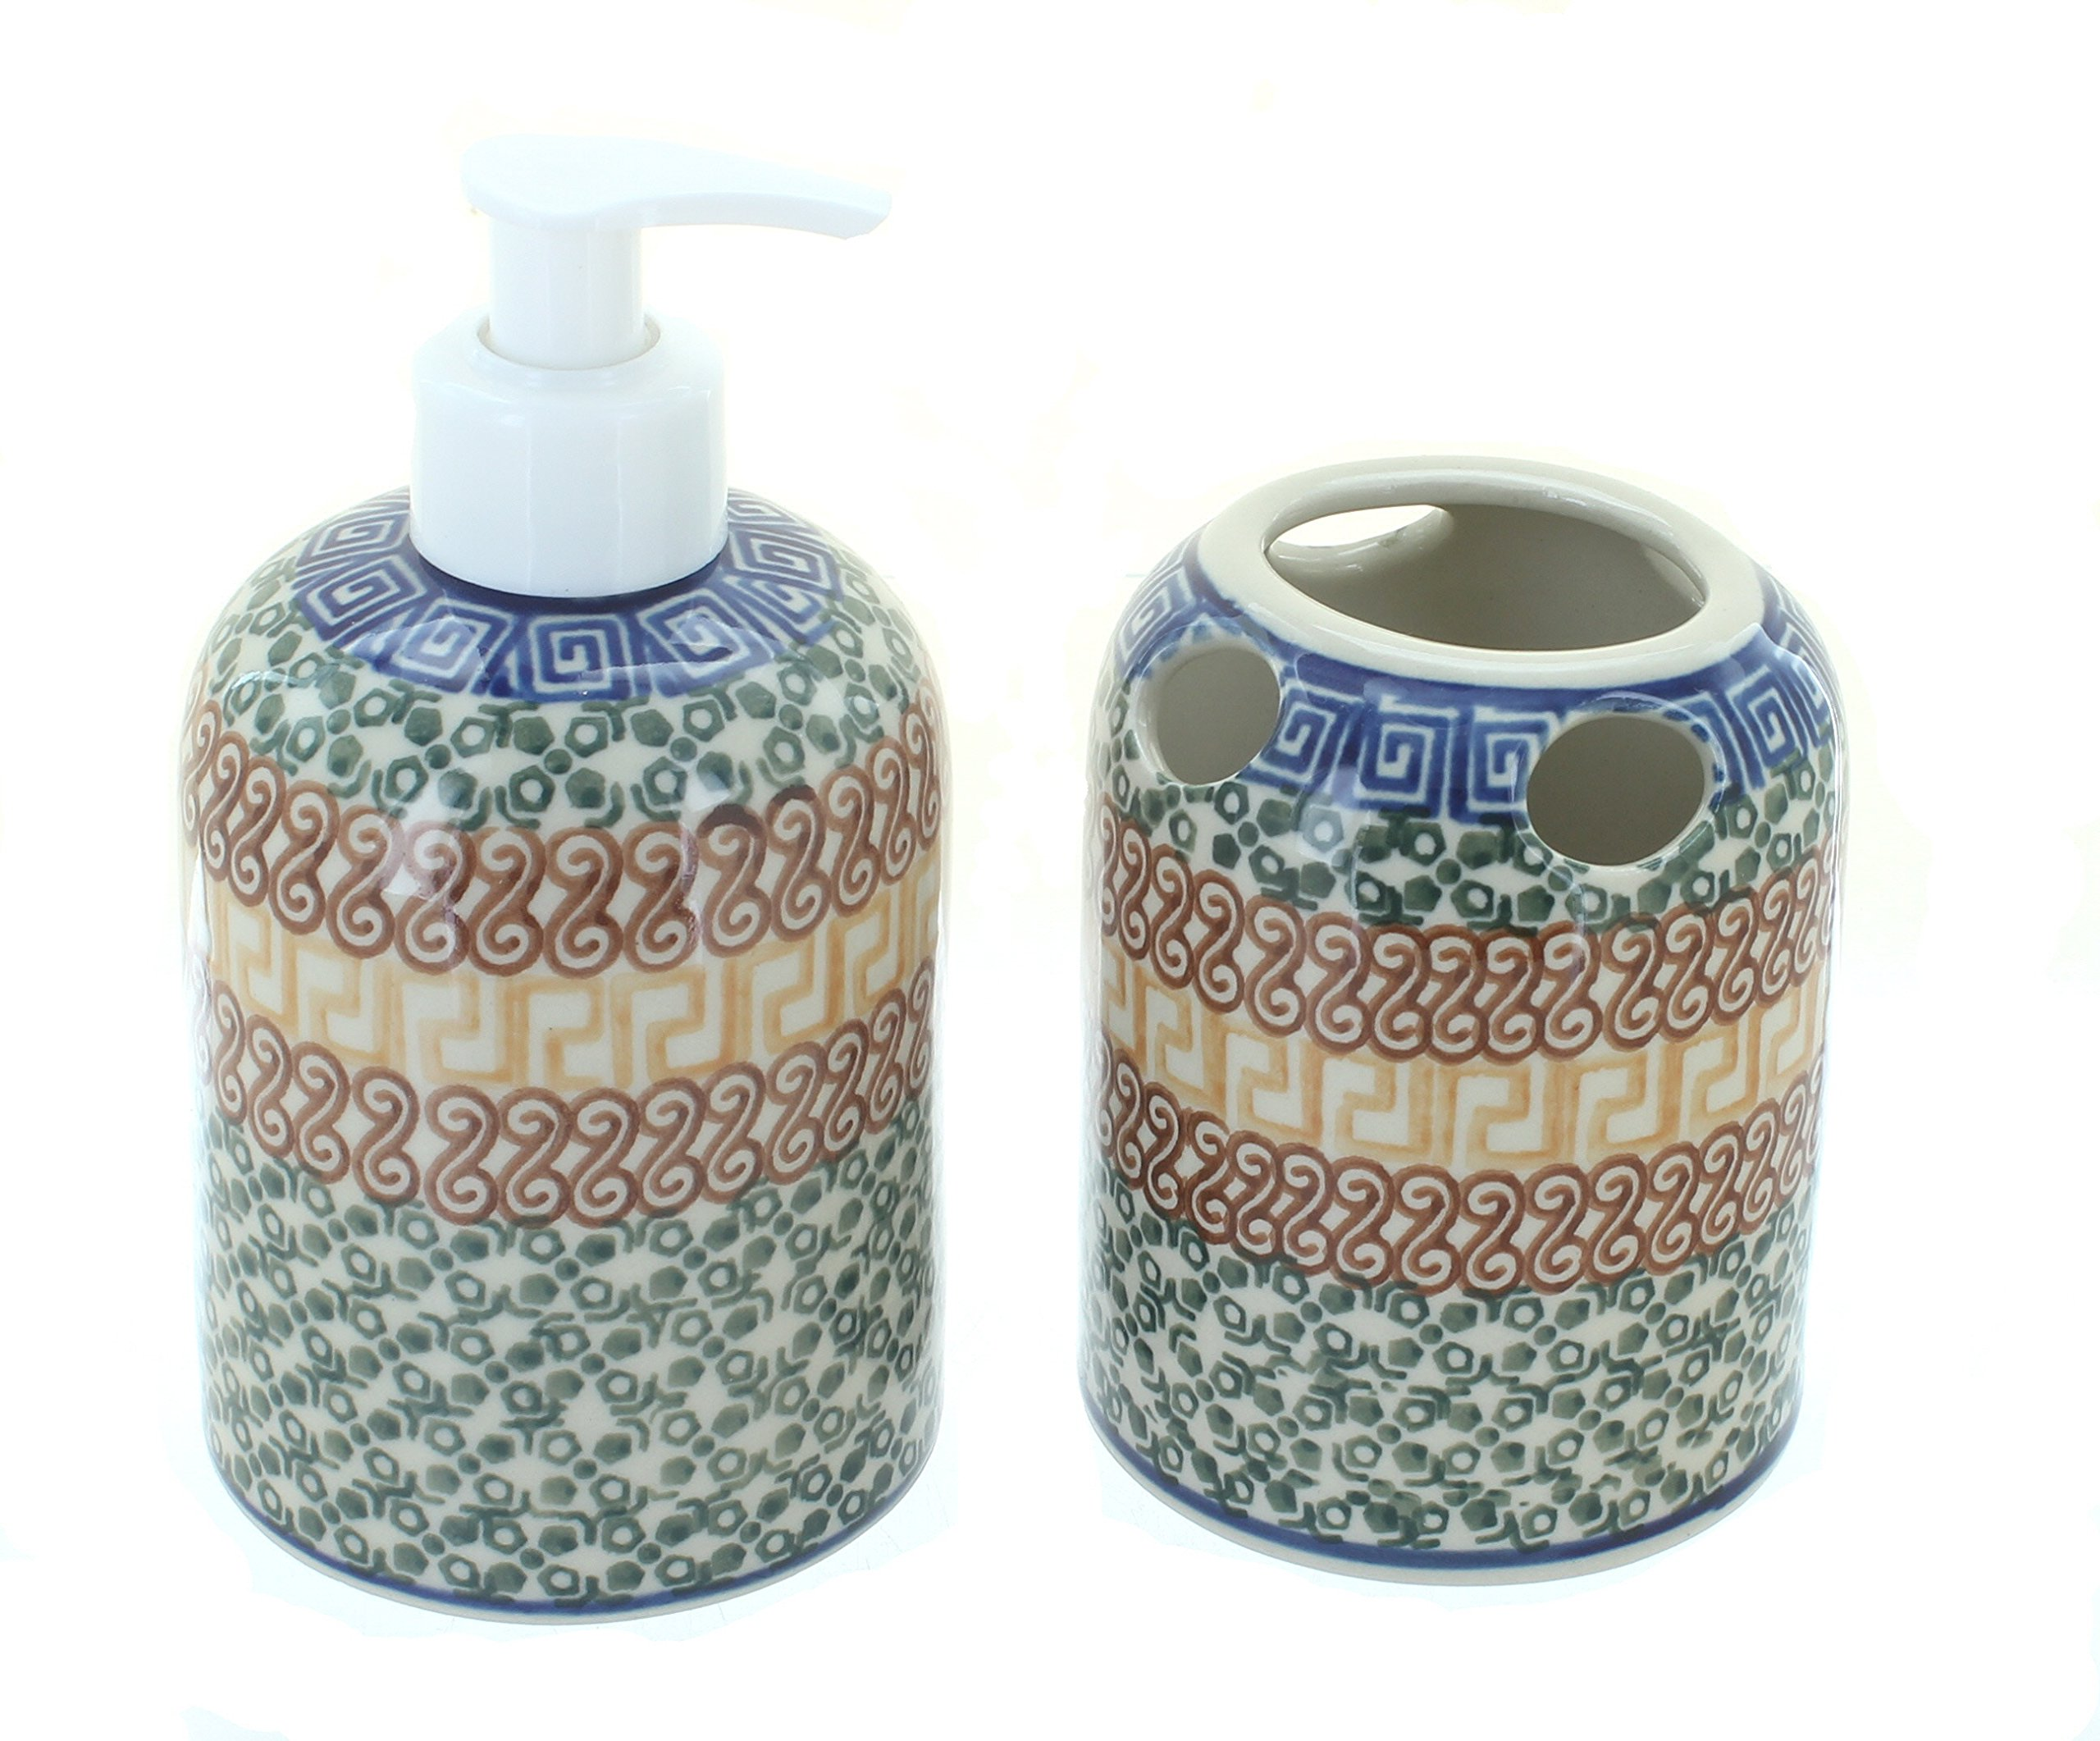 Blue Rose Polish Pottery Athena Soap Dispenser & Toothbrush Holder - Hand made in Poland Safe to use in microwave, dishwasher, freezer, oven No lead or cadmium - bathroom-accessory-sets, bathroom-accessories, bathroom - 81WlEKn9YwL -